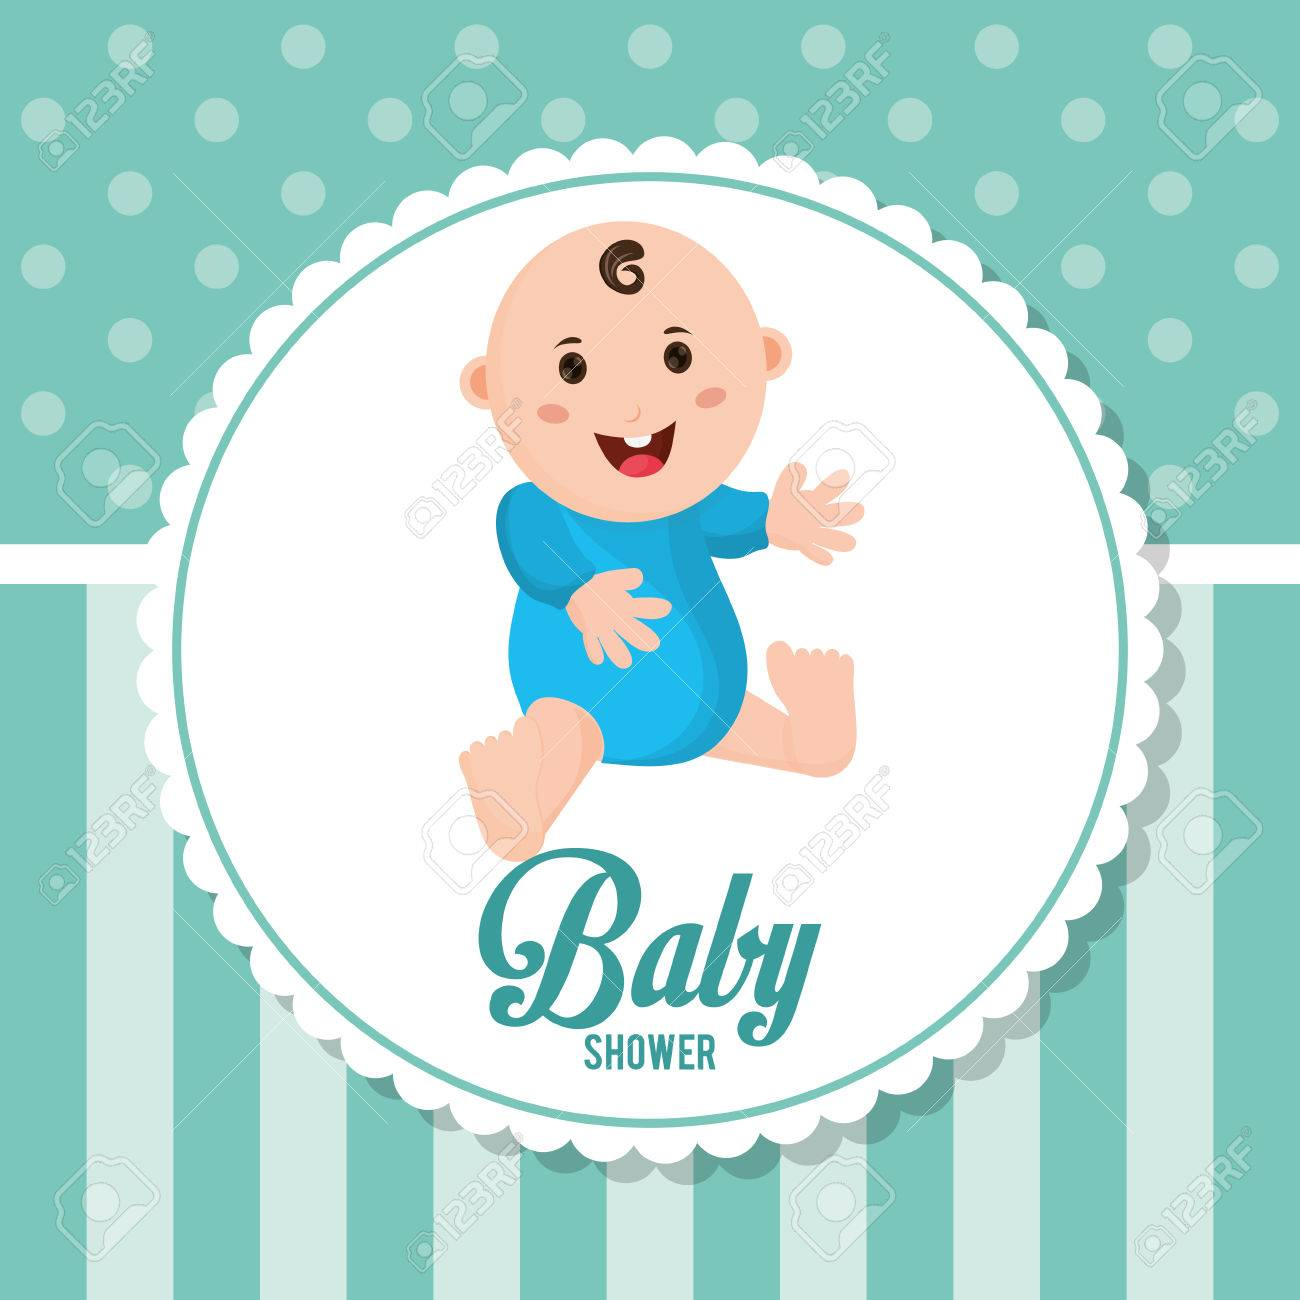 baby boy icon baby shower card and childhood theme colorfulbaby boy icon baby shower card and childhood theme colorful design vector illustration